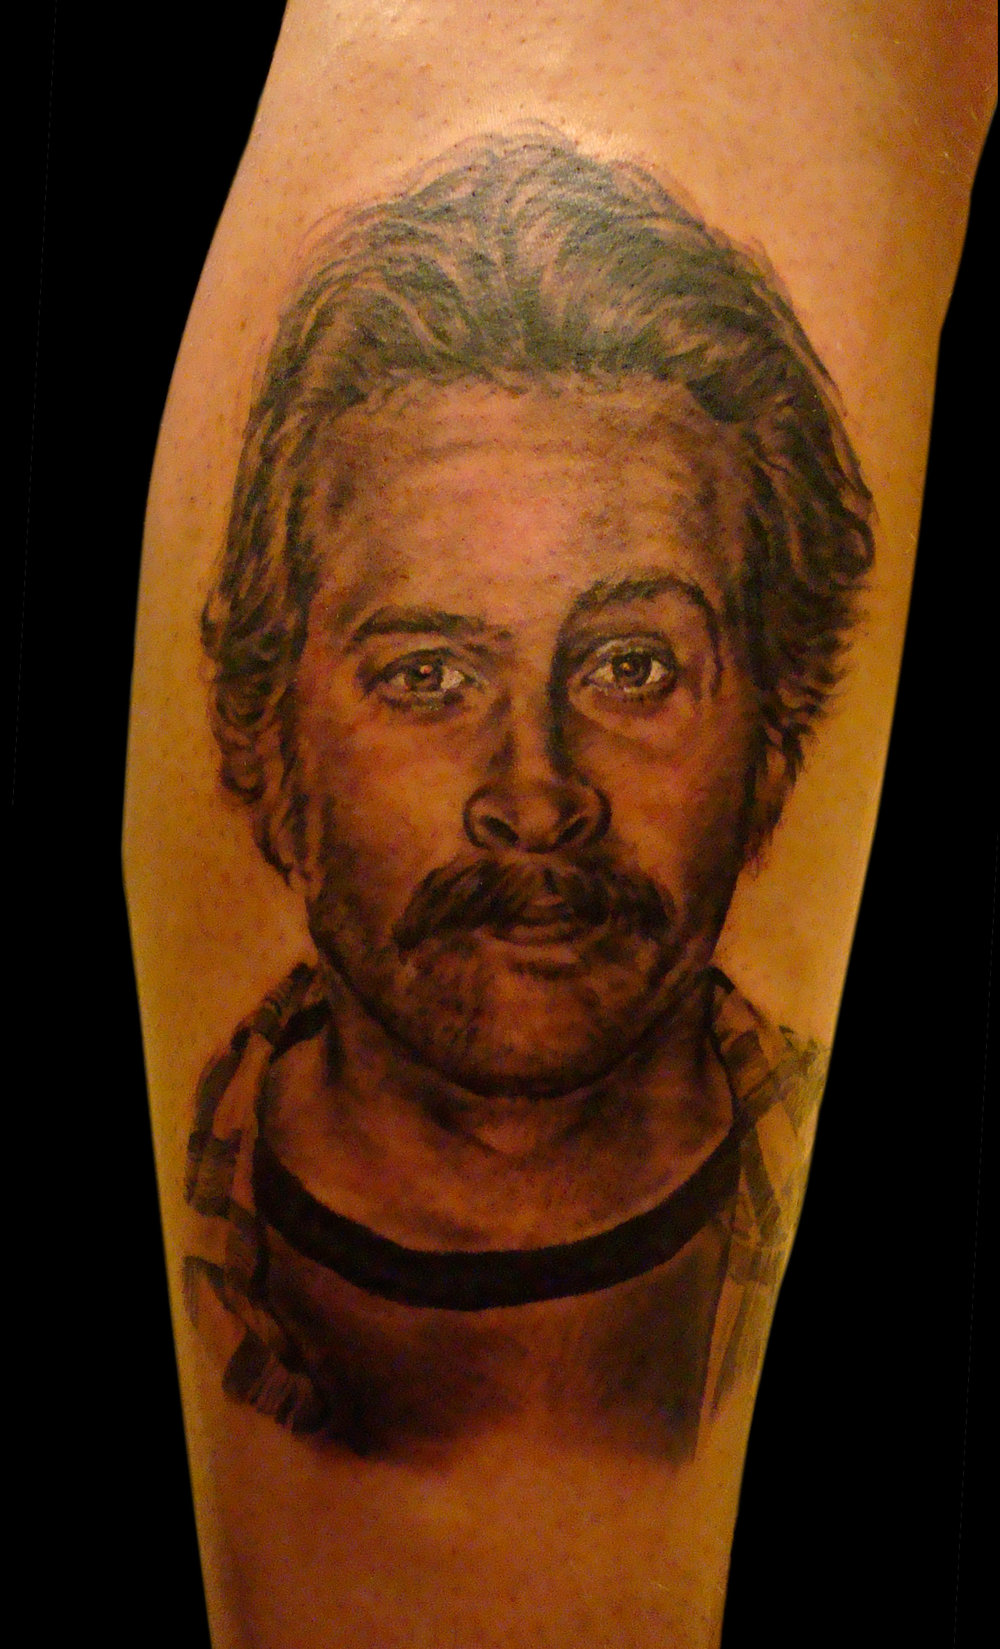 Black and Grey Jason Lee 'My Name Is Earl' Portrait Tattoo, (fresh)